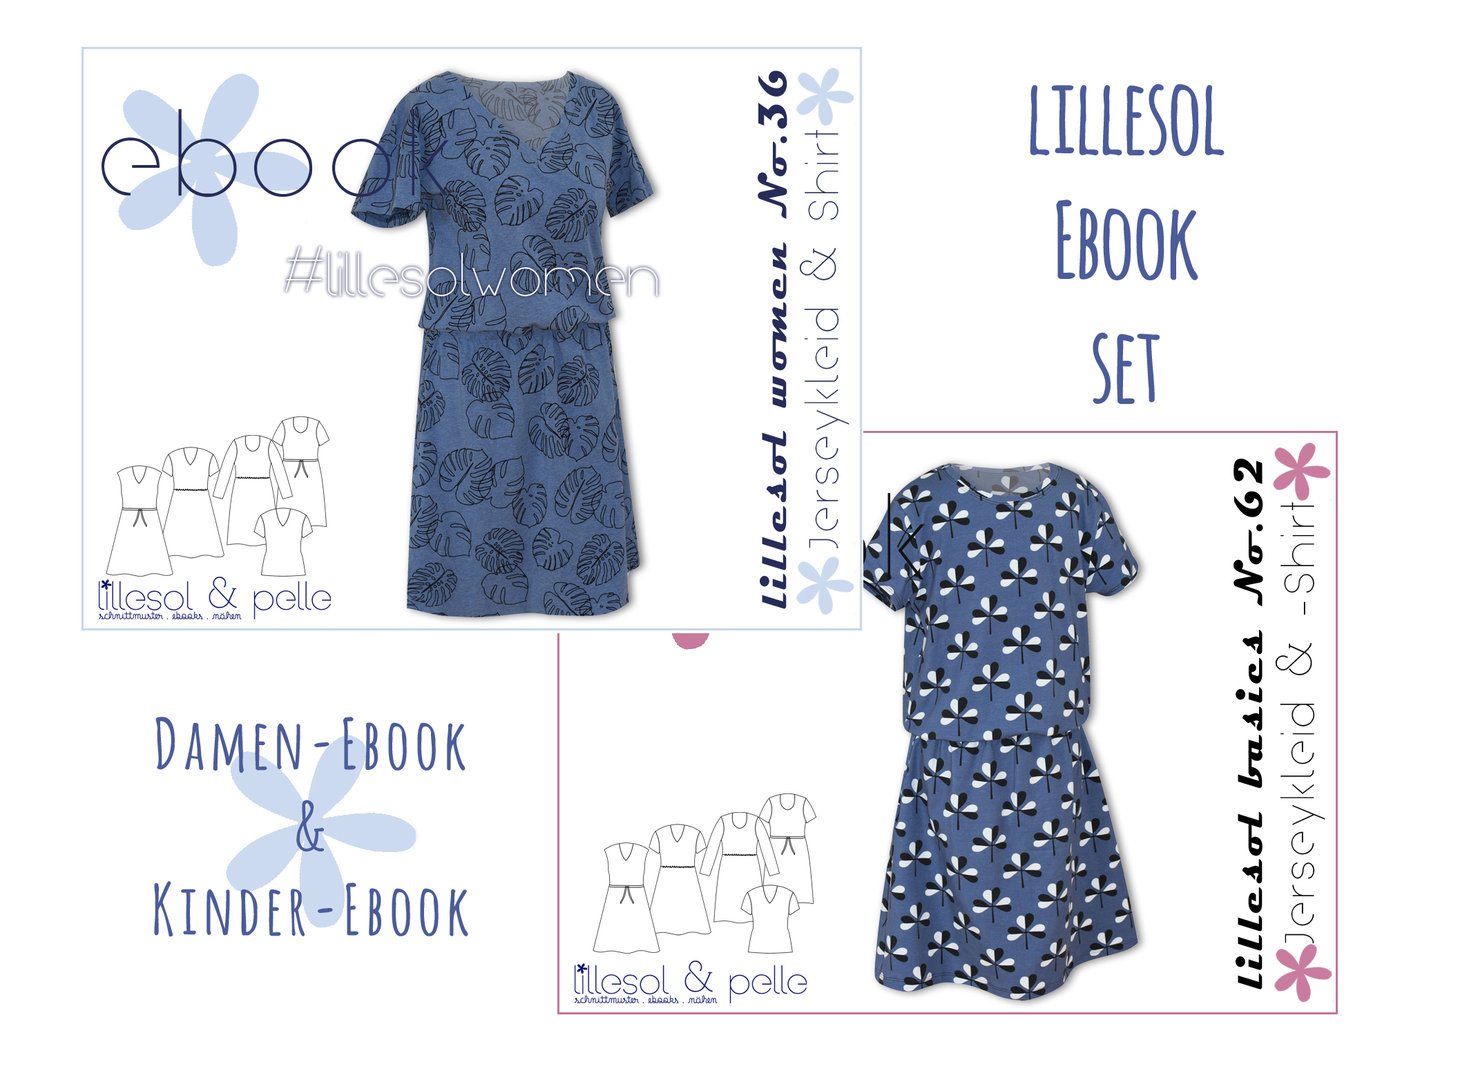 lillesol ebook set basics No.62 und women No. 36 * mit Video-Nähanleitung *